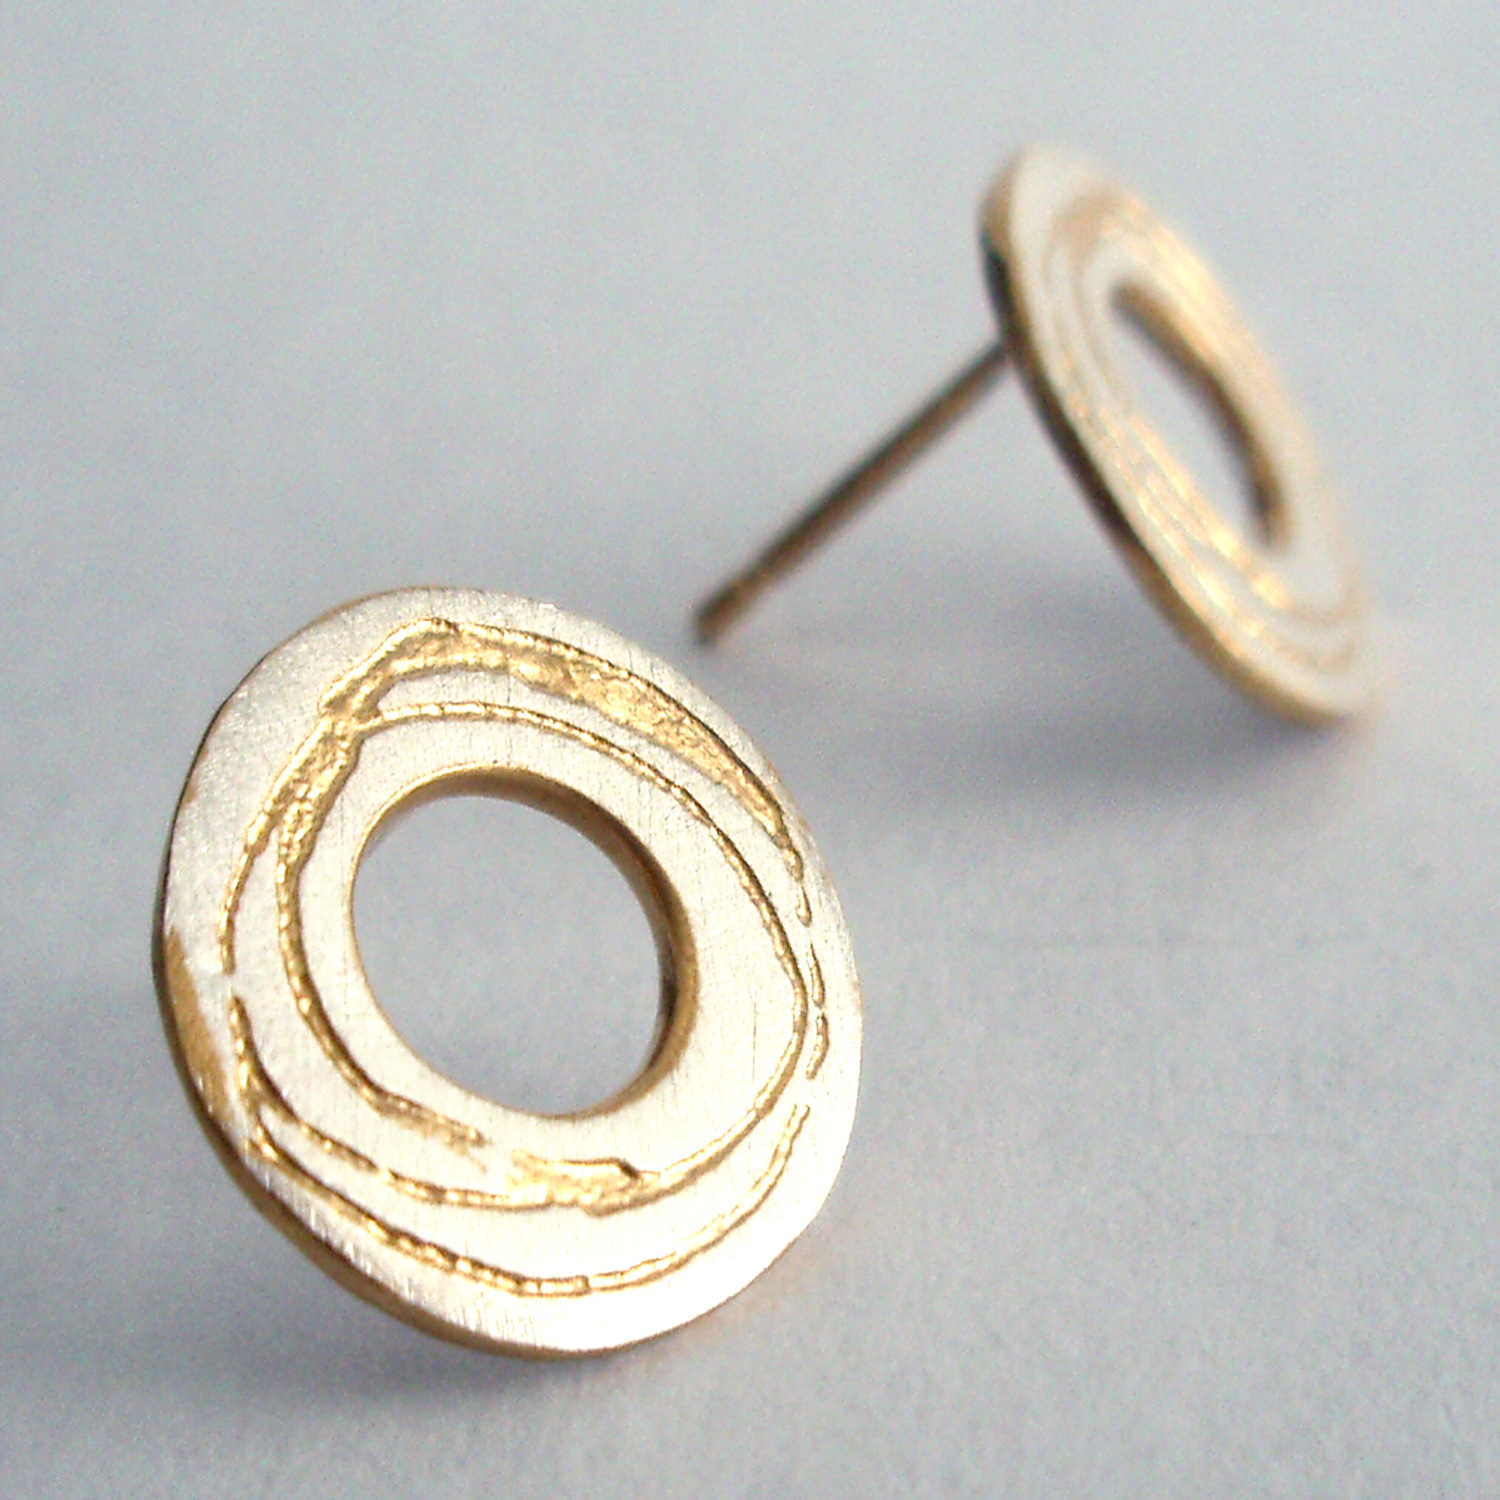 Modern Jewelry Design Ideas: Spiral Etched Silver Washer Earrings